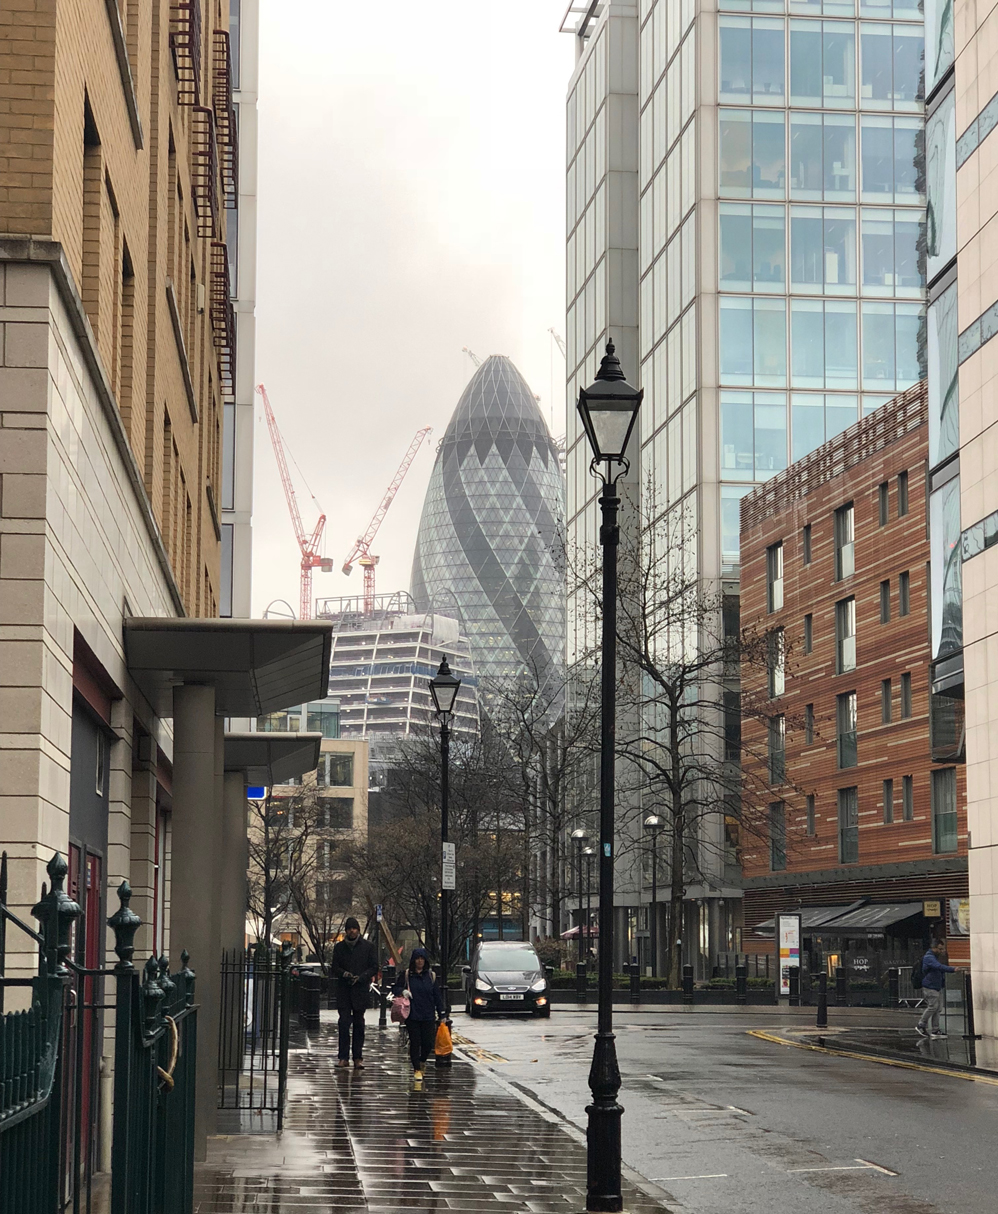 What happend April 2018 The Gherkin